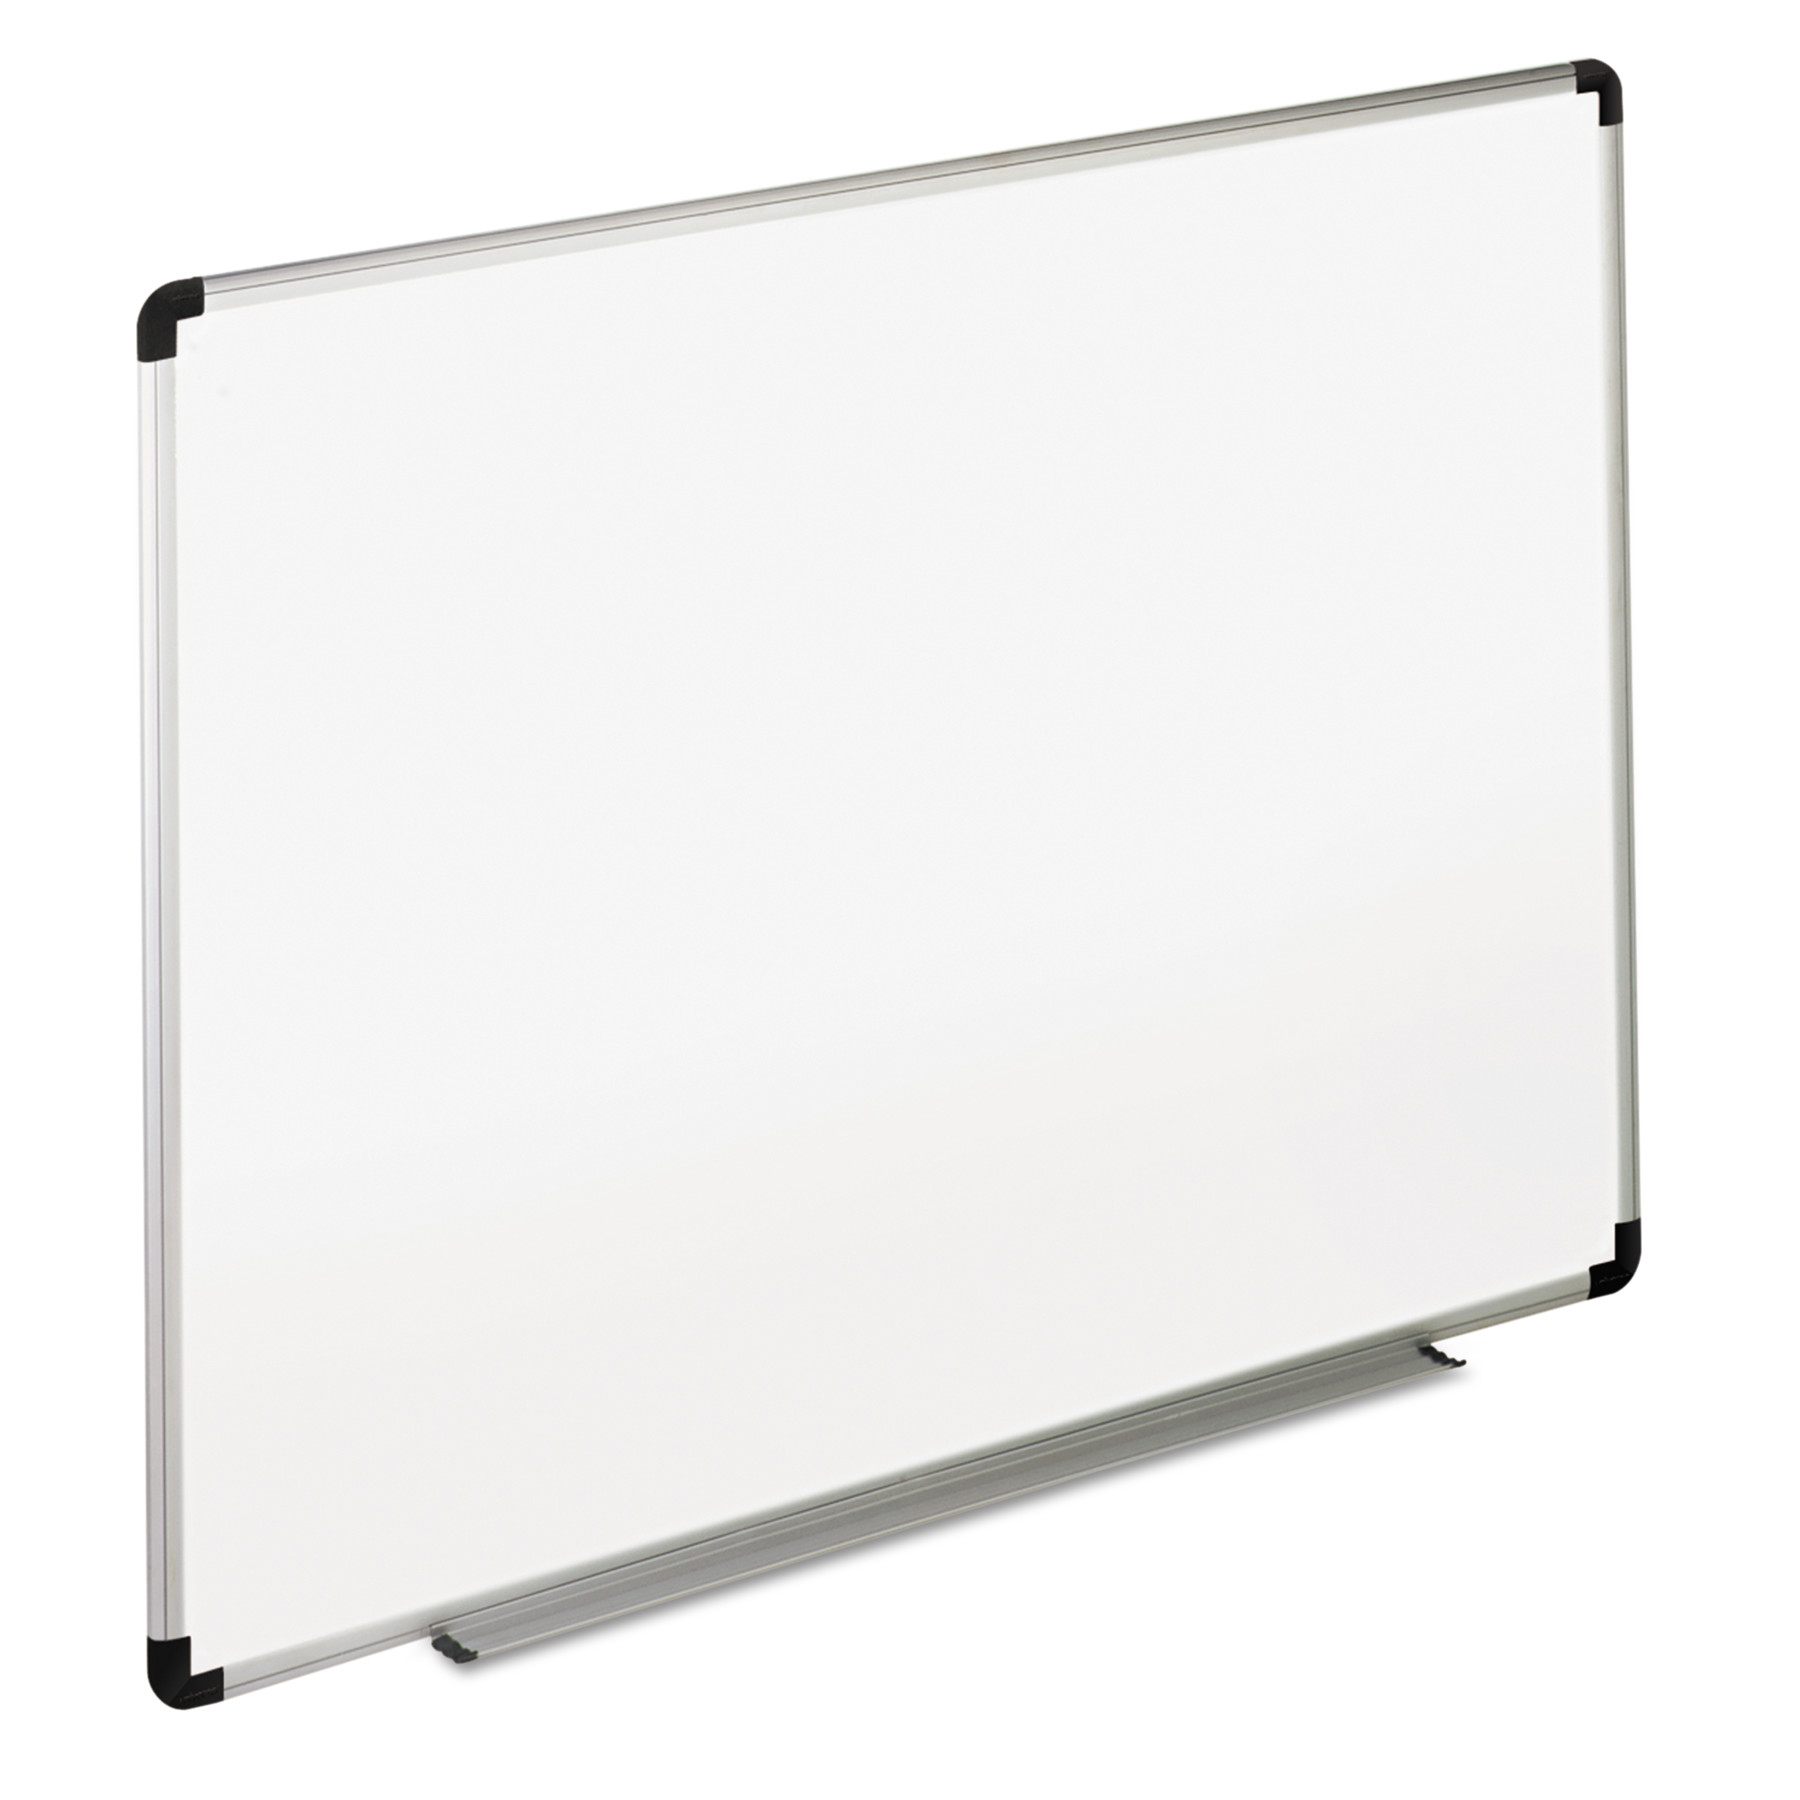 Dry Erase Board, Melamine, 36 x 24, White, Black Gray Aluminum Plastic Frame -UNV43723 by Universal Office Products